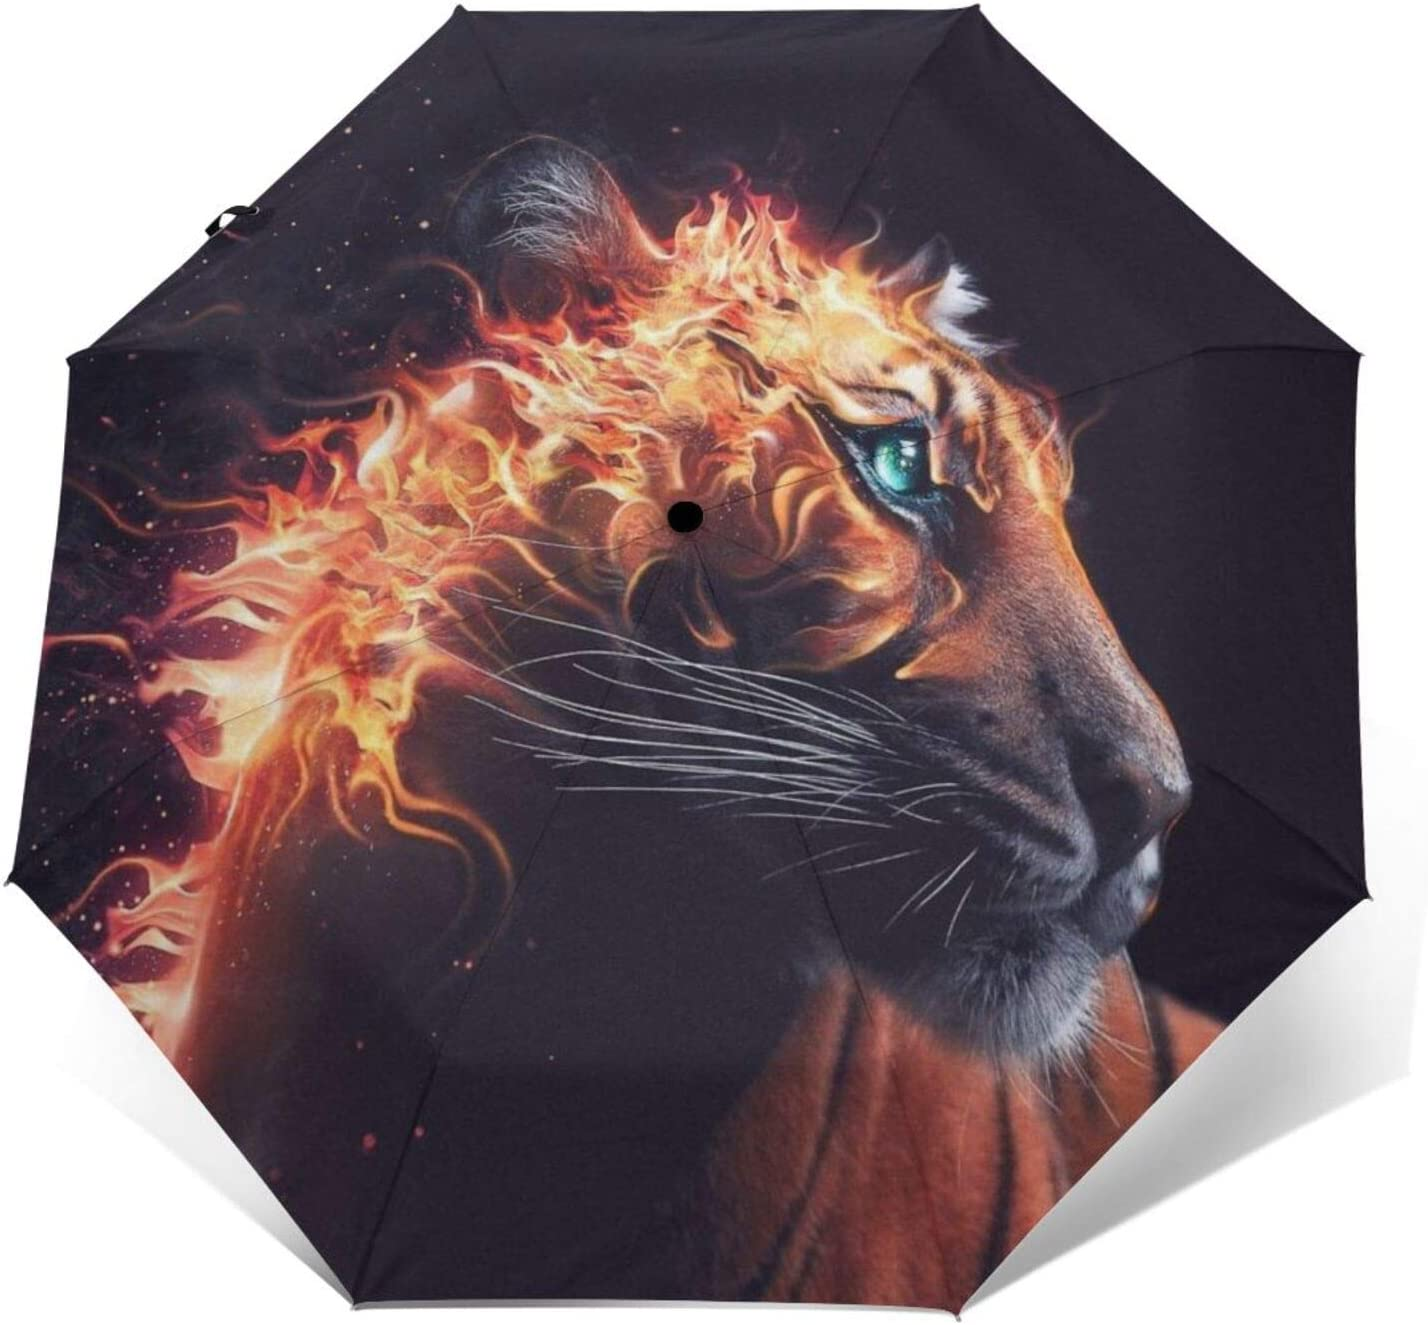 Outlet sale feature SWEET TANG Wild Max 75% OFF and Angry Tiger Fire Mammal Flame Brave Forest K